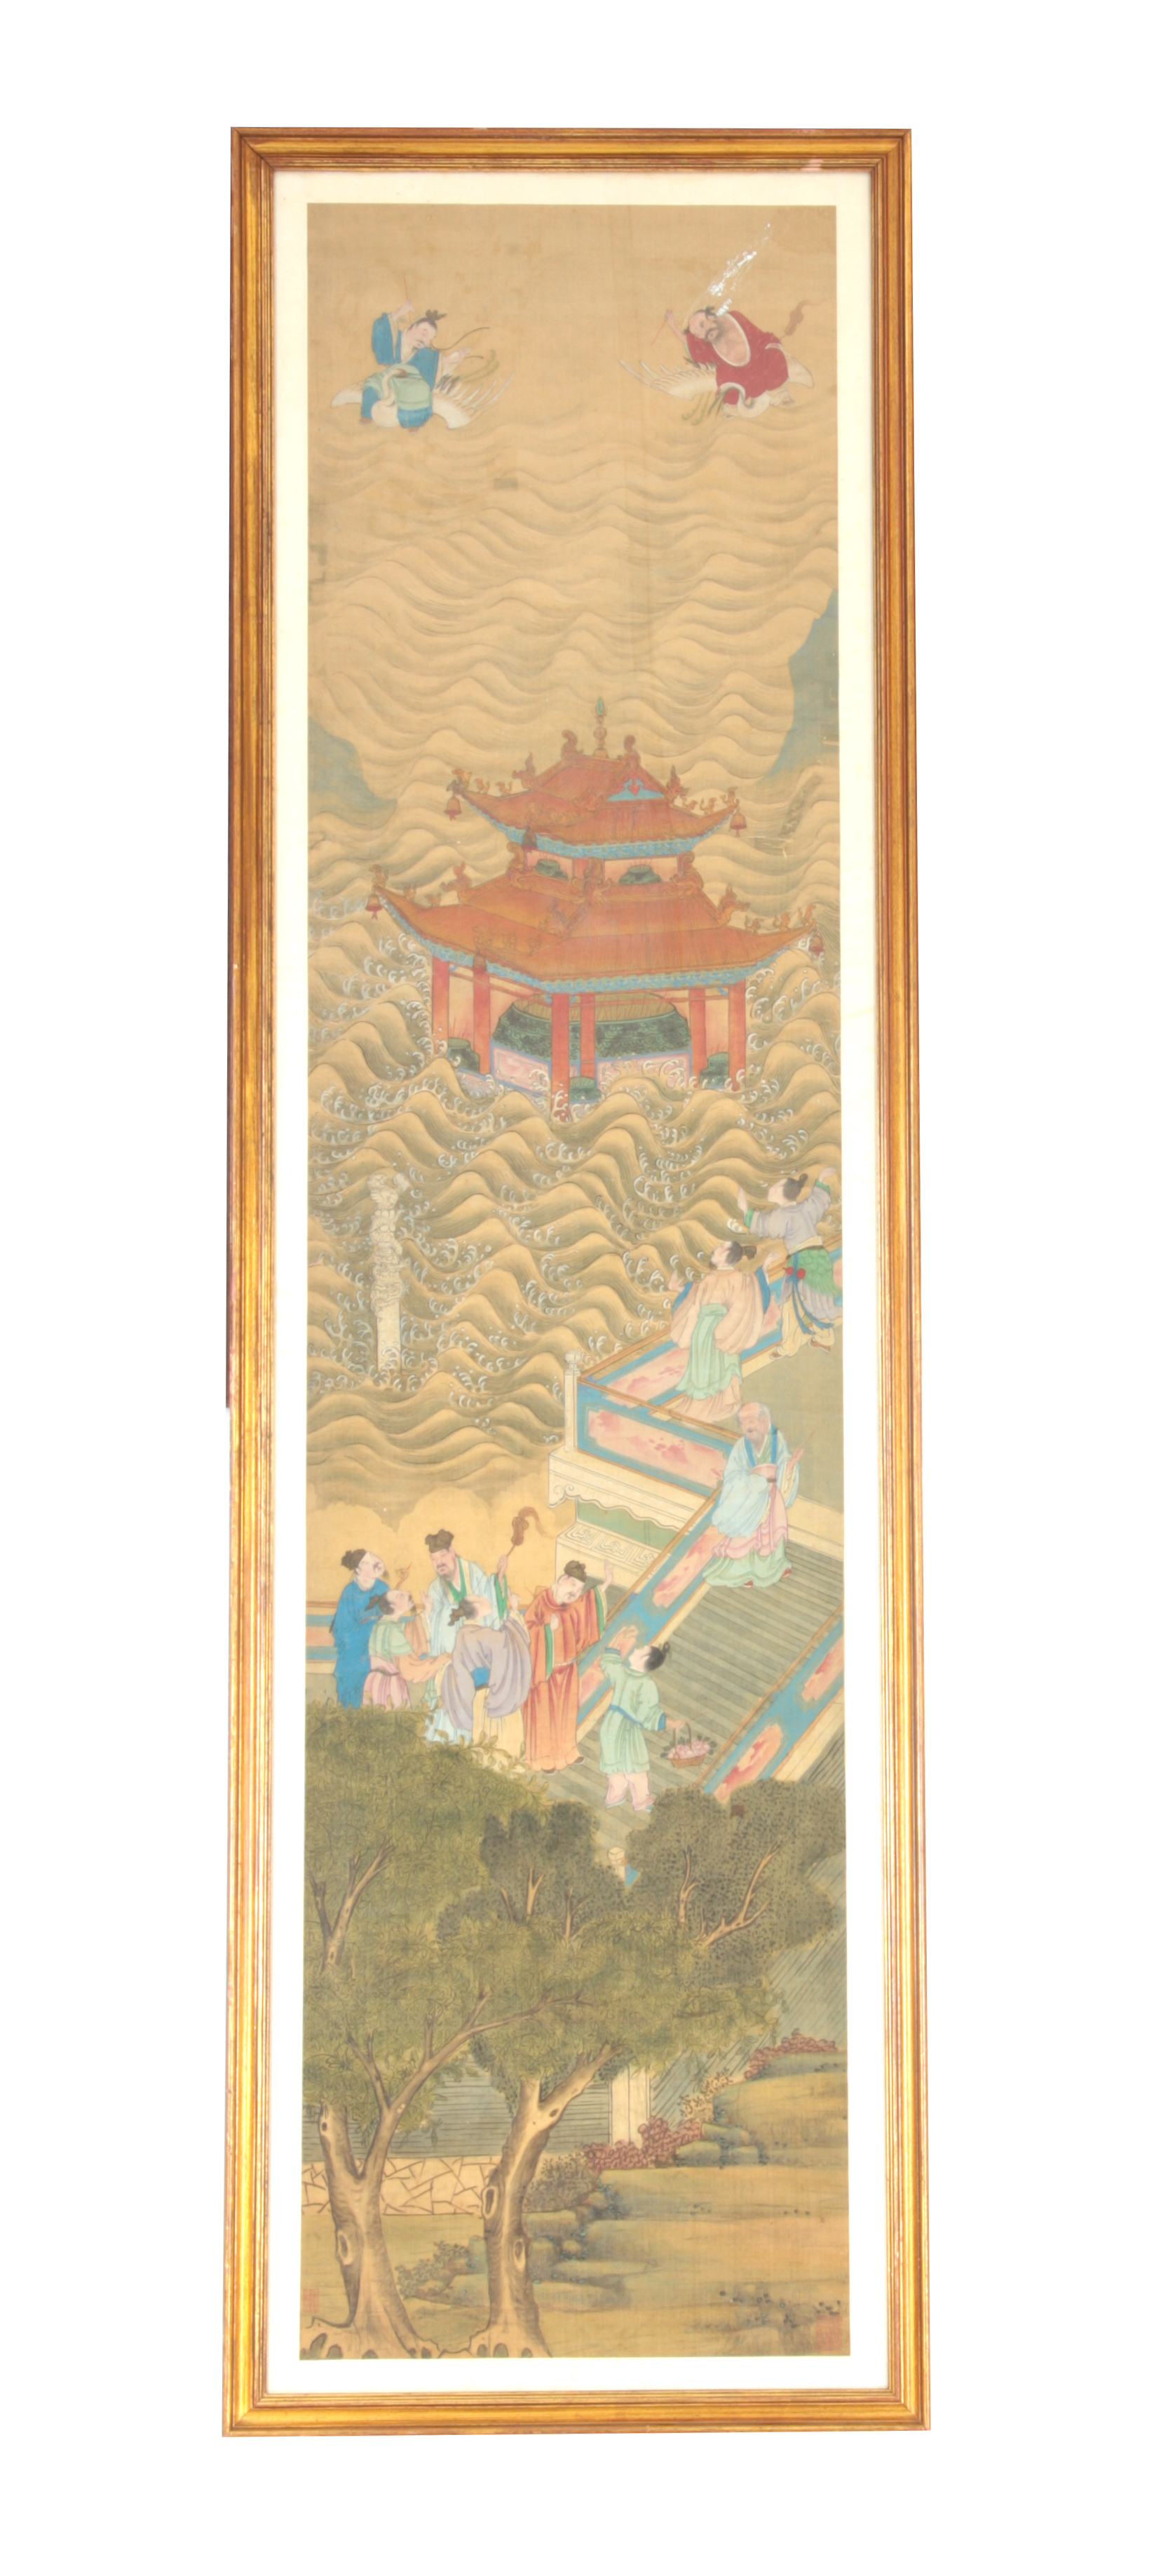 A LARGE 19TH CENTURY CHINESE PAINTED SILK PANEL finely decorated with figures and pagodas amongst